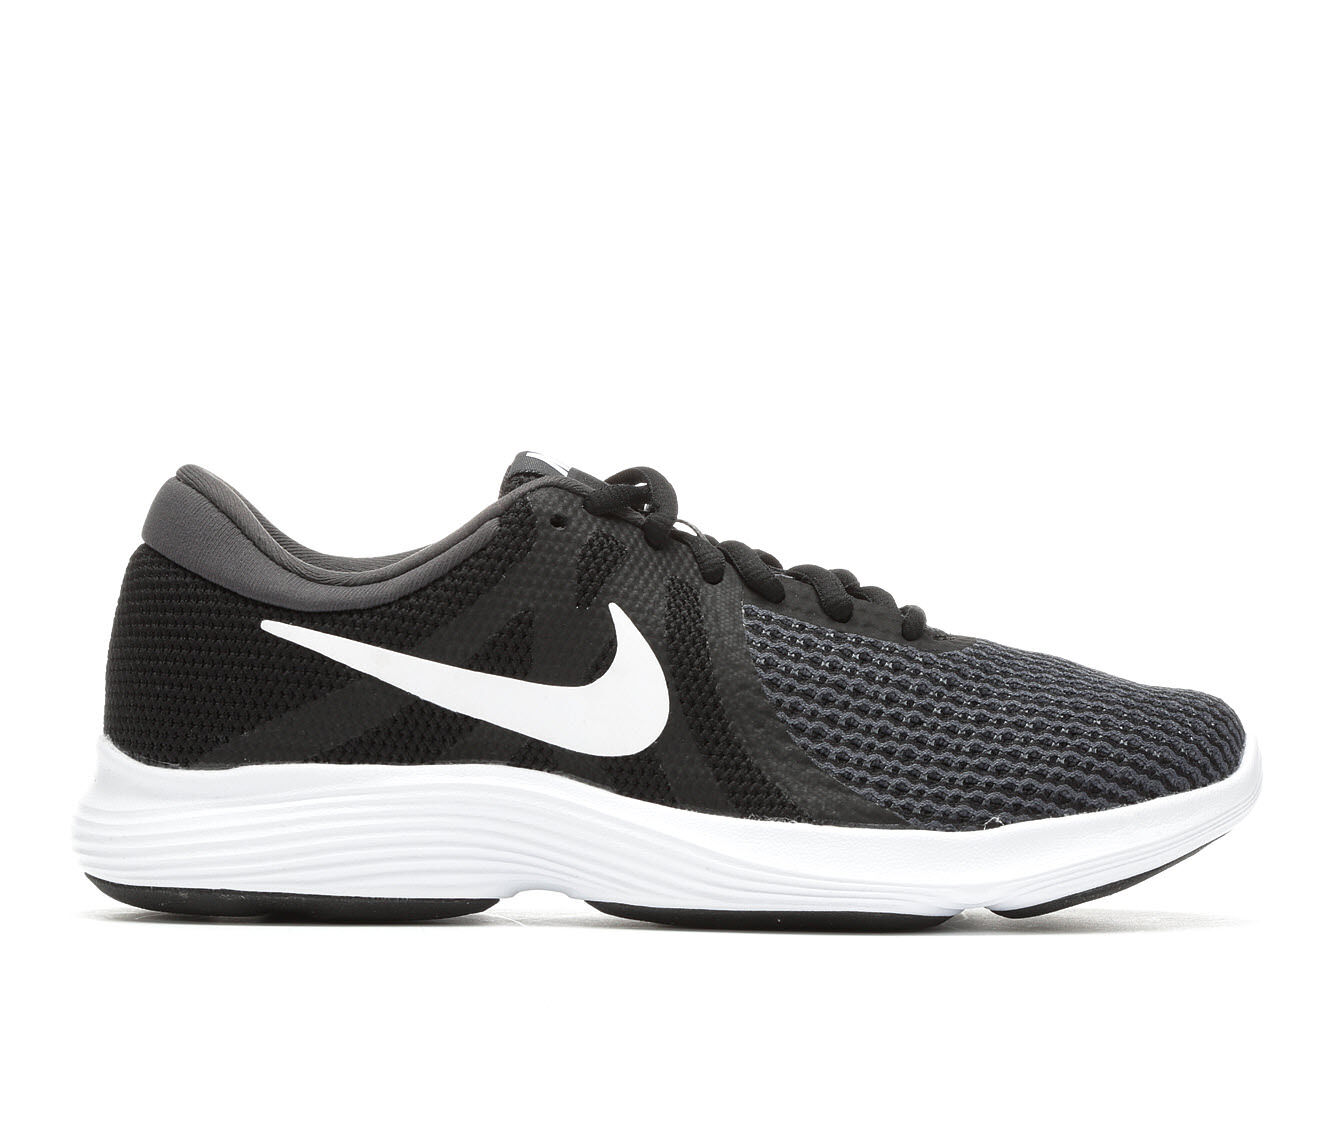 Women's Nike Revolution 4 Running Shoes Black/White